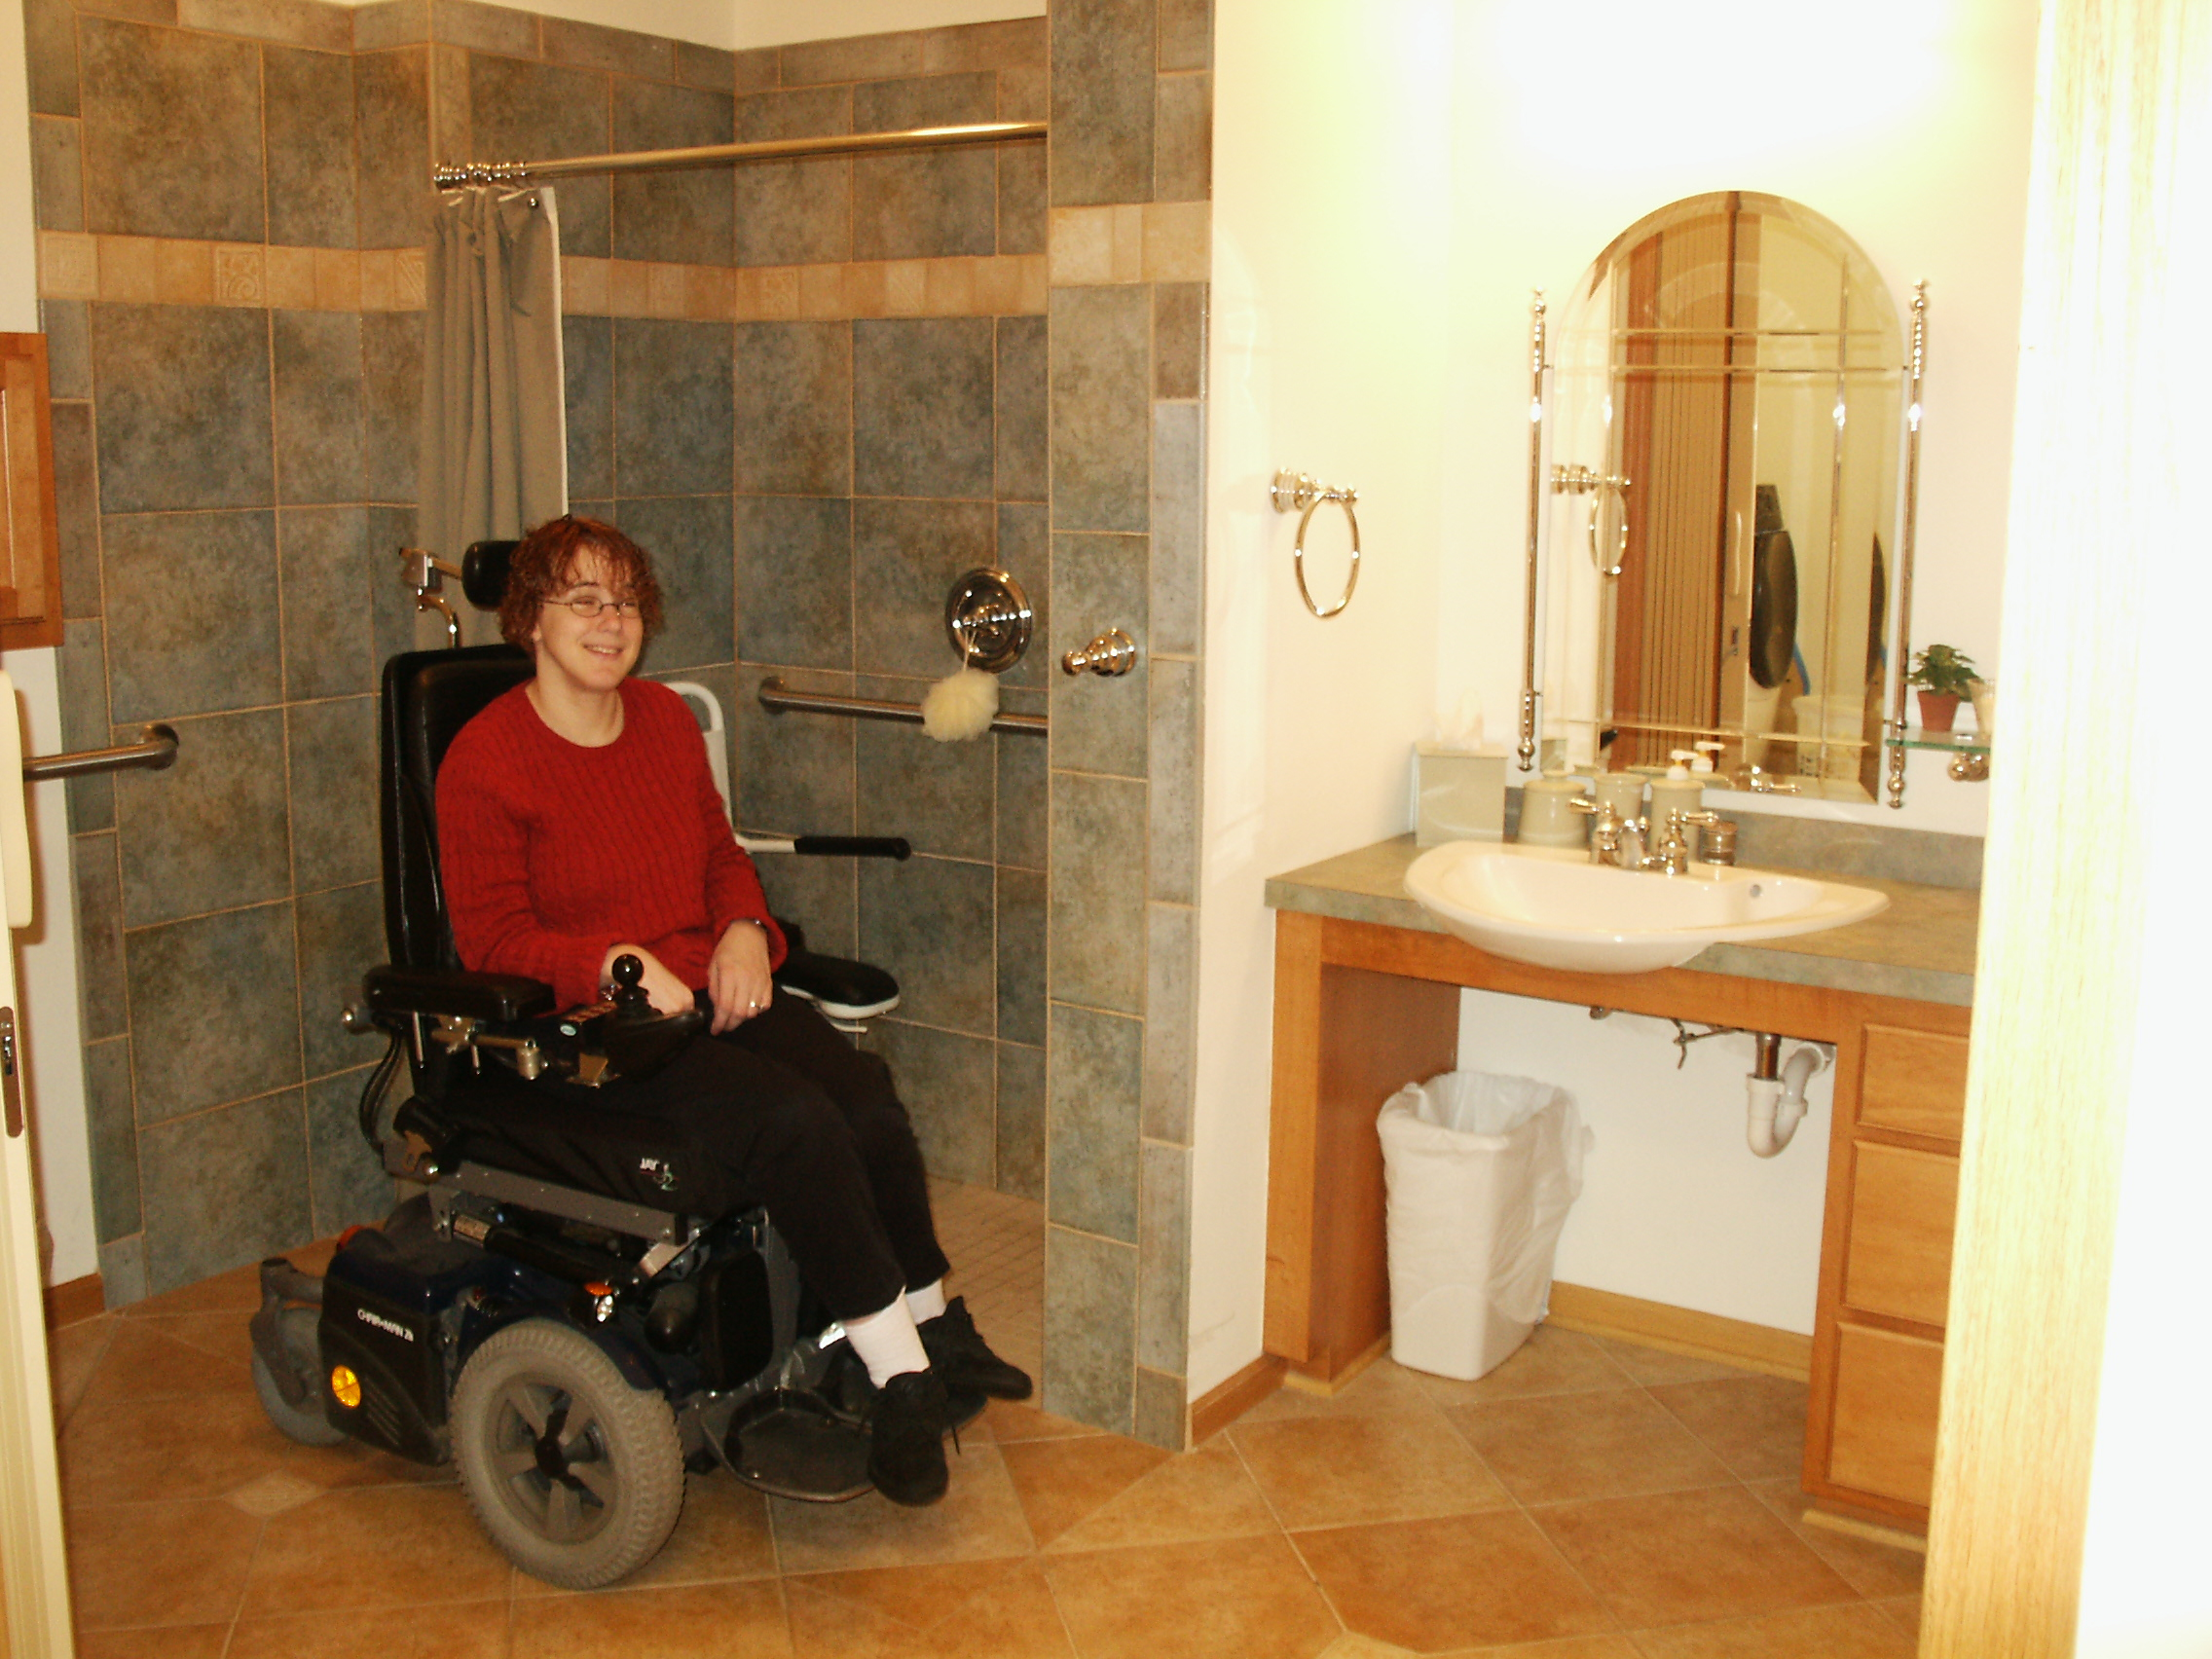 Michelle Nickerson showing off her new roll-in shower and accessible bathroom sink in while in her wheelchair.